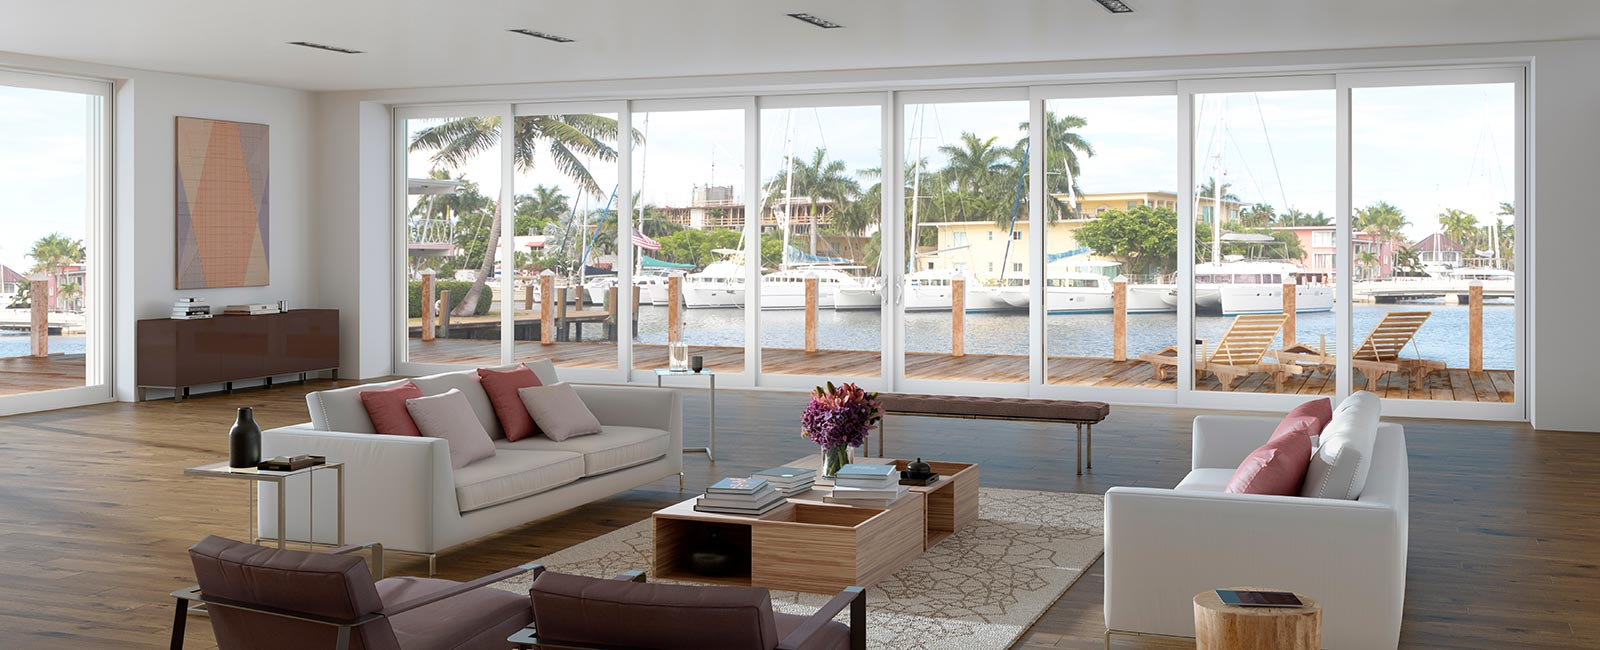 Impact Resistant Windows in Palm Beach Waterfront Home